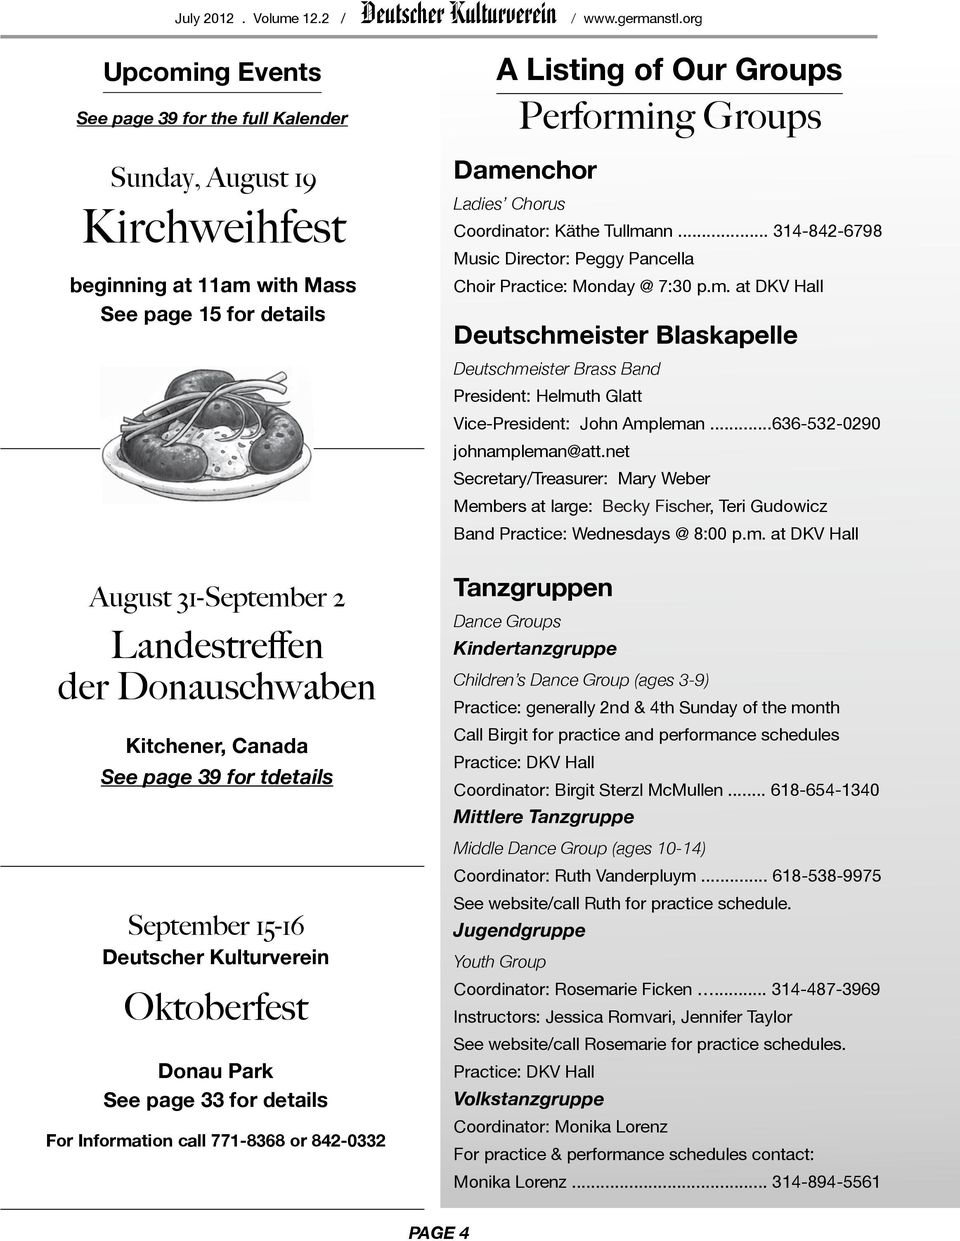 Kitchener, Canada See page 39 for tdetails September 15-16 Deutscher Kulturverein Oktoberfest Donau Park See page 33 for details For Information call 771-8368 or 842-0332 A Listing of Our Groups